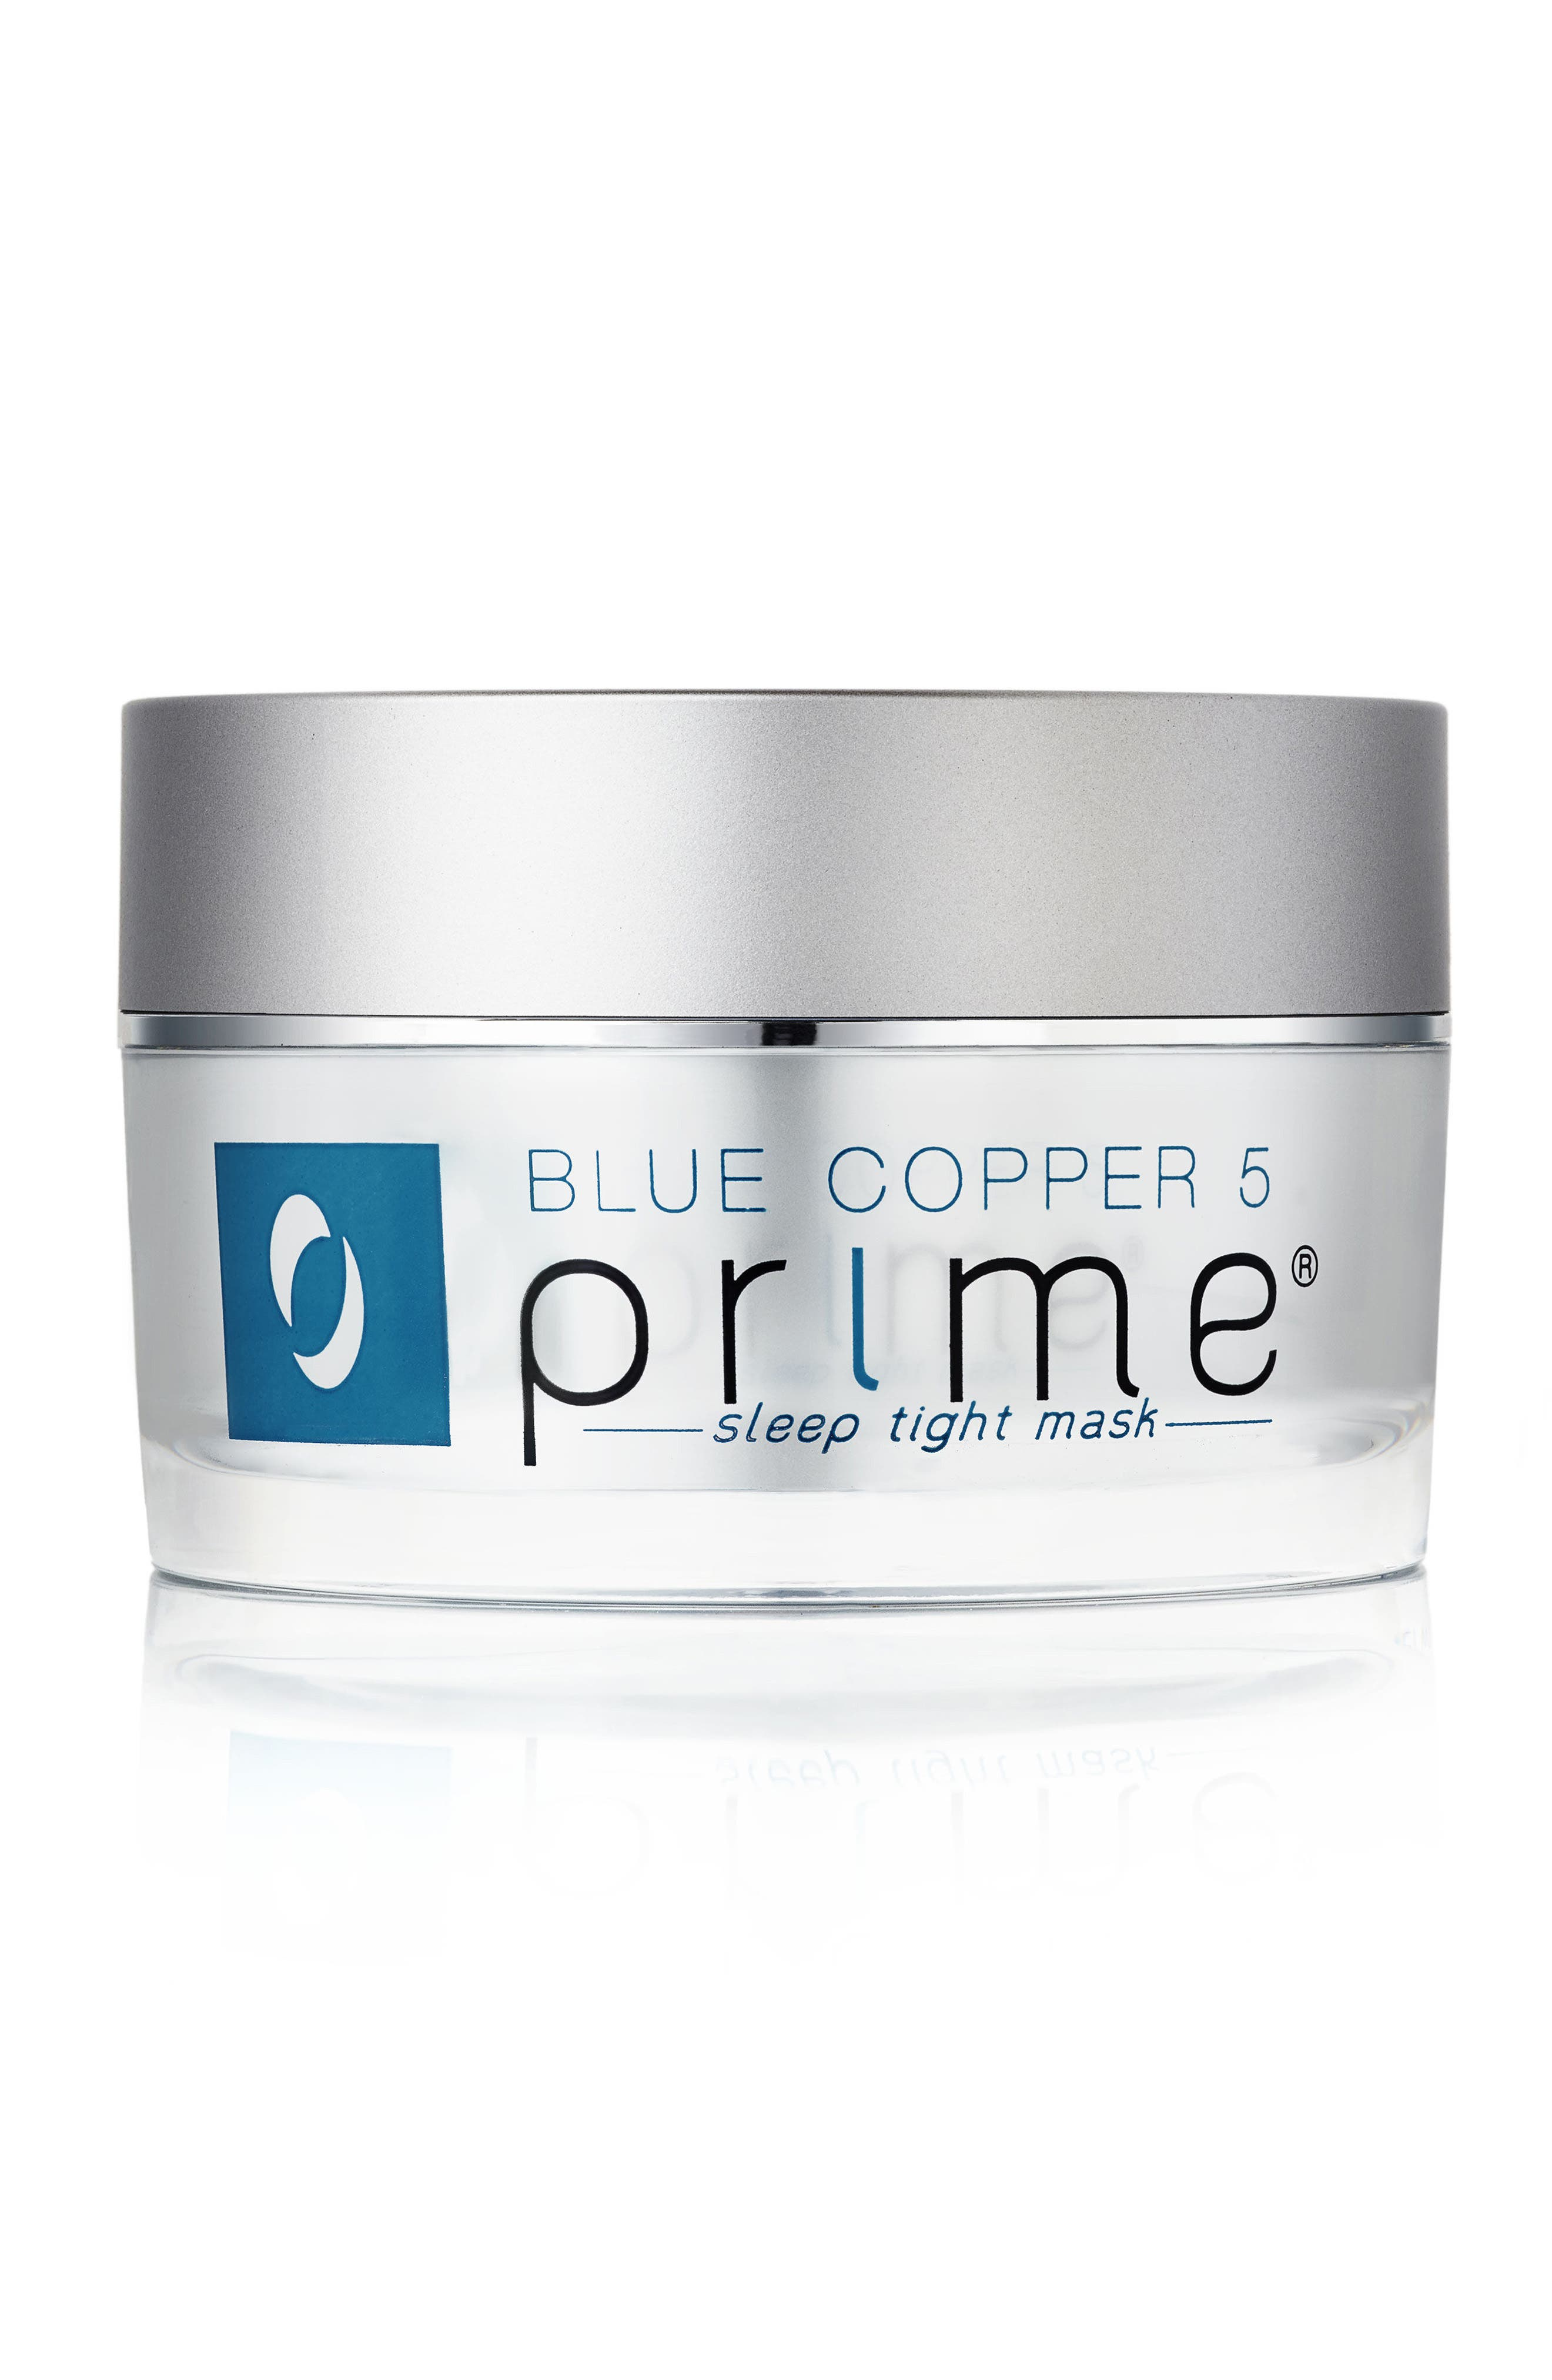 Blue Copper 5 Prime<sup>®</sup> Sleep Tight Mask,                         Main,                         color, NO COLOR